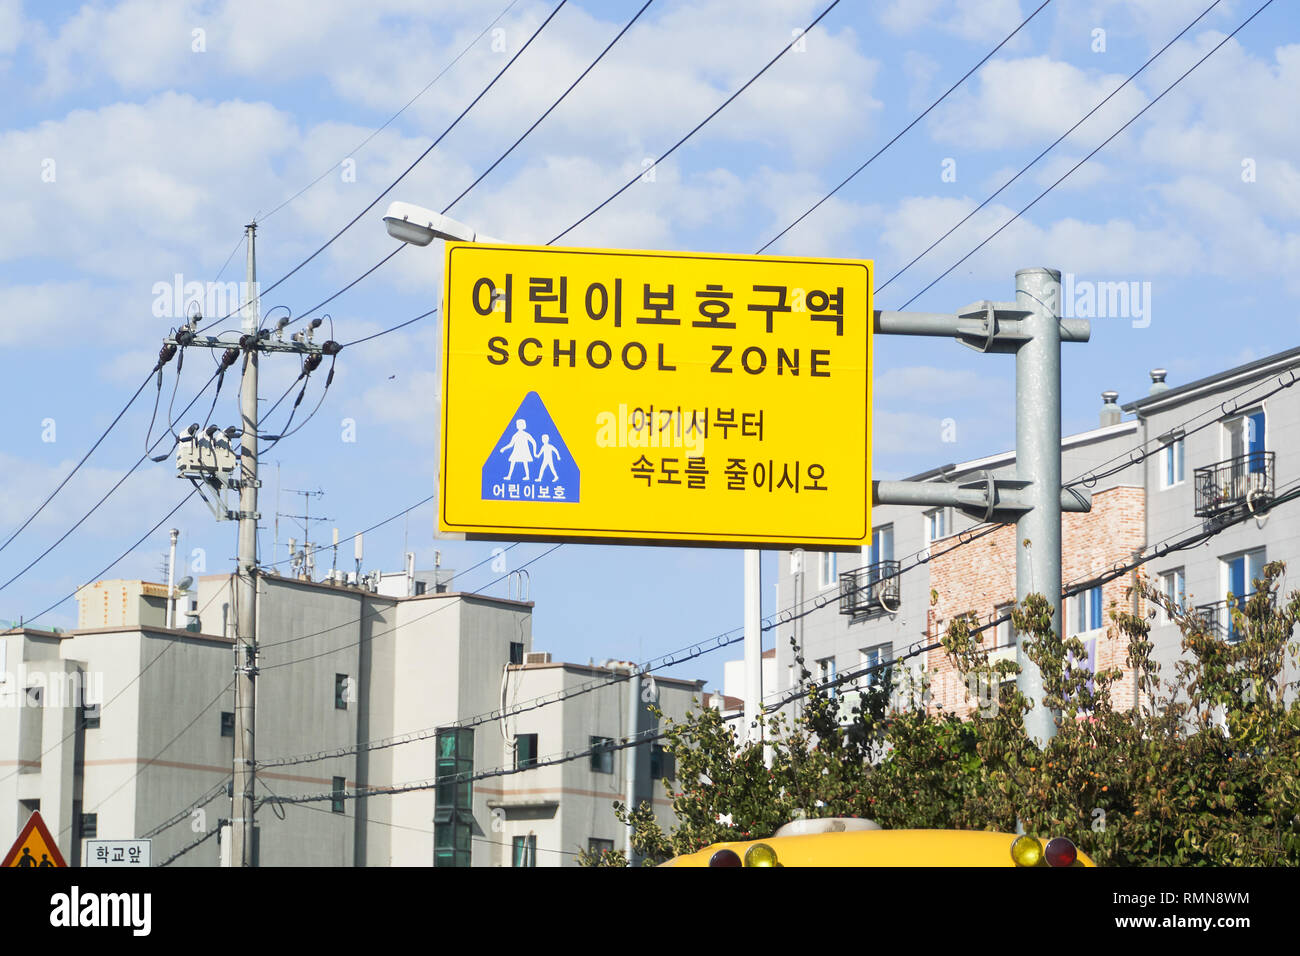 Gimpo Korea September 10 2018 School Zone Signs That Limit The Speed Of Driving Near The School For Student Safety Stock Photo Alamy